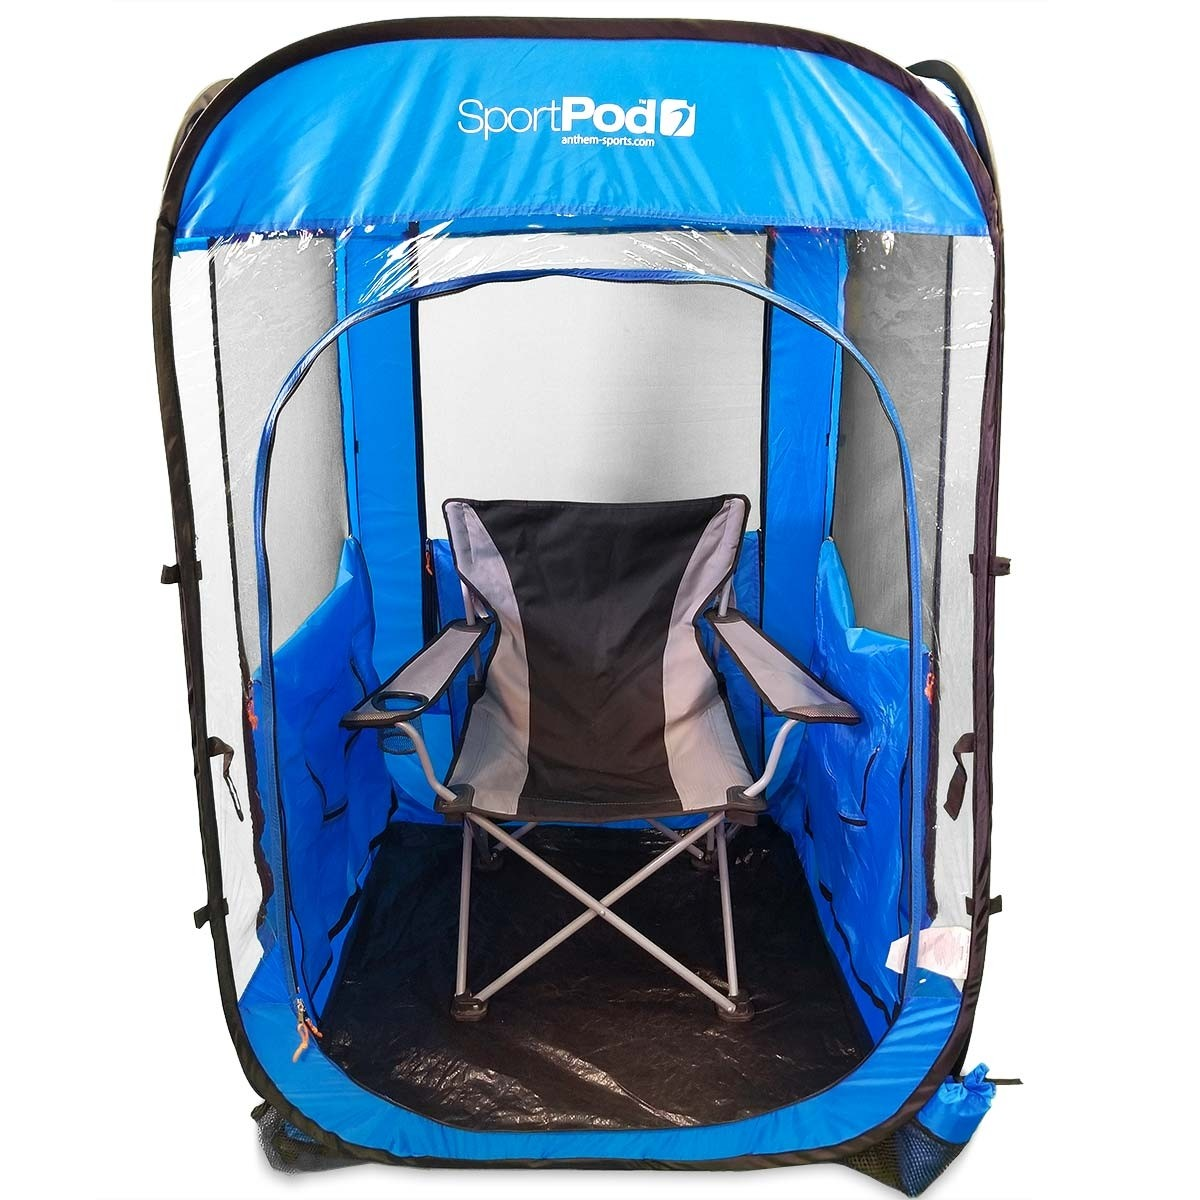 Solopod Undercover All Weather Sportpod Pop Up Chair Tent